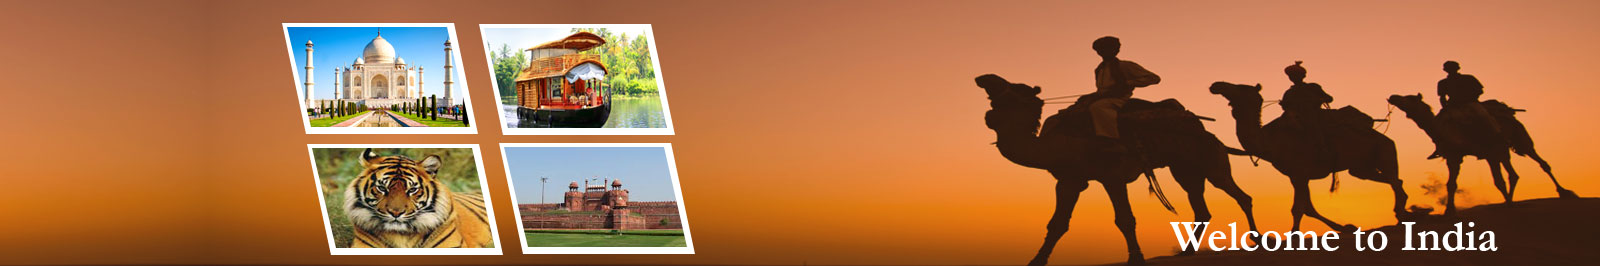 Tourism India Banners Store Shopify Banners